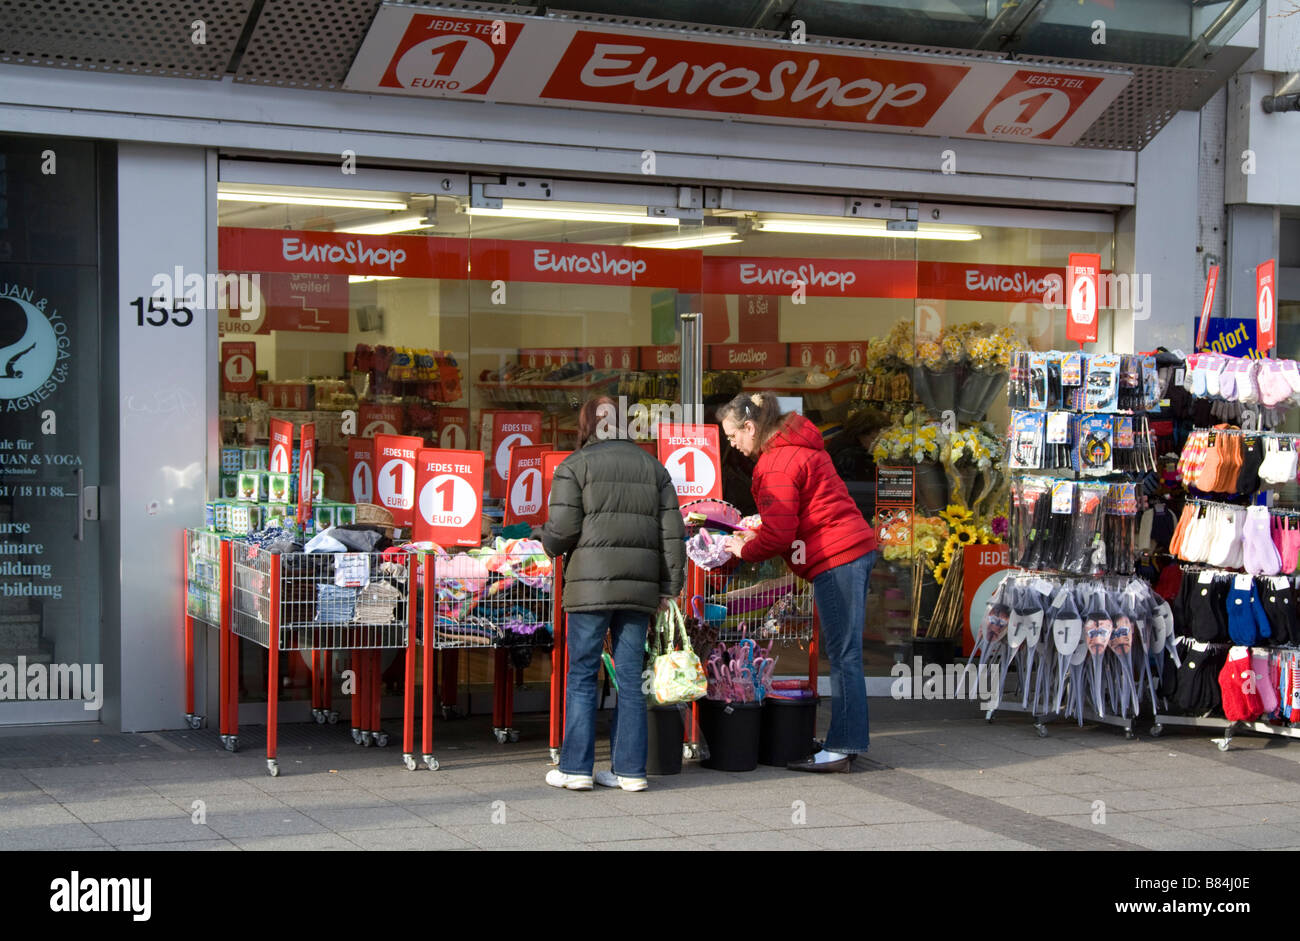 One Euro Shop Mönchengladbach Germany - Stock Image